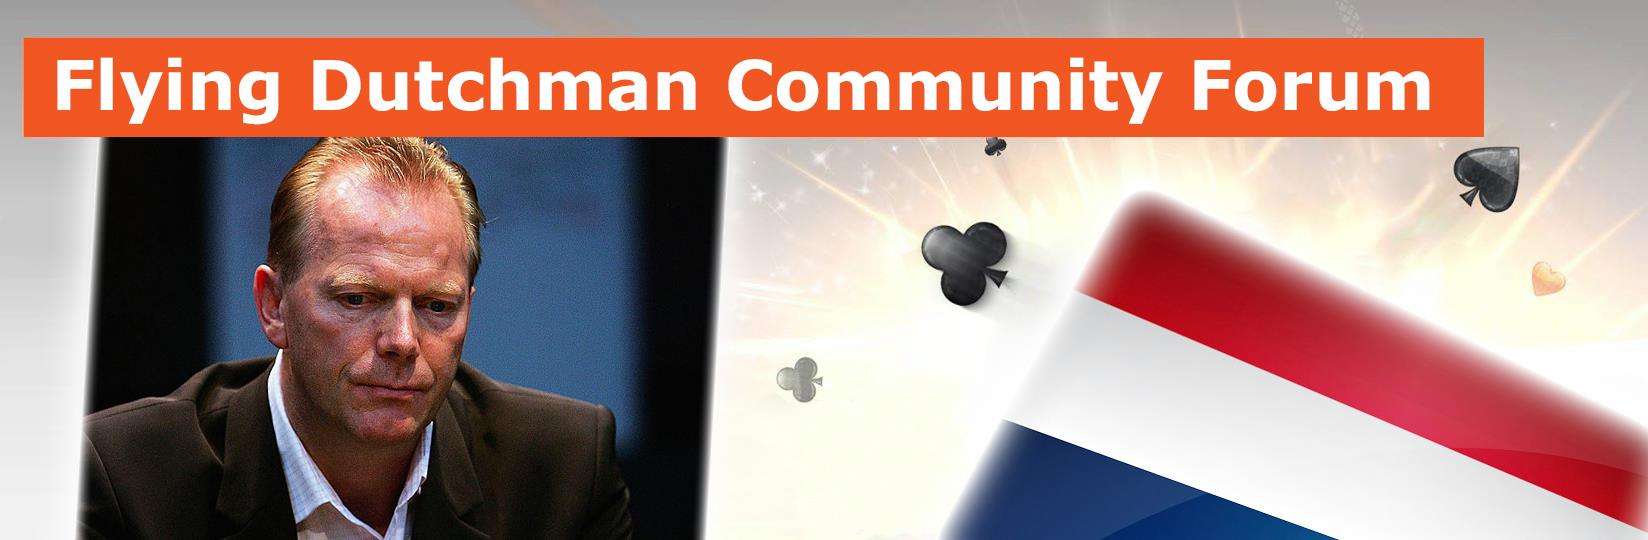 Flying Dutchman Facebook Community